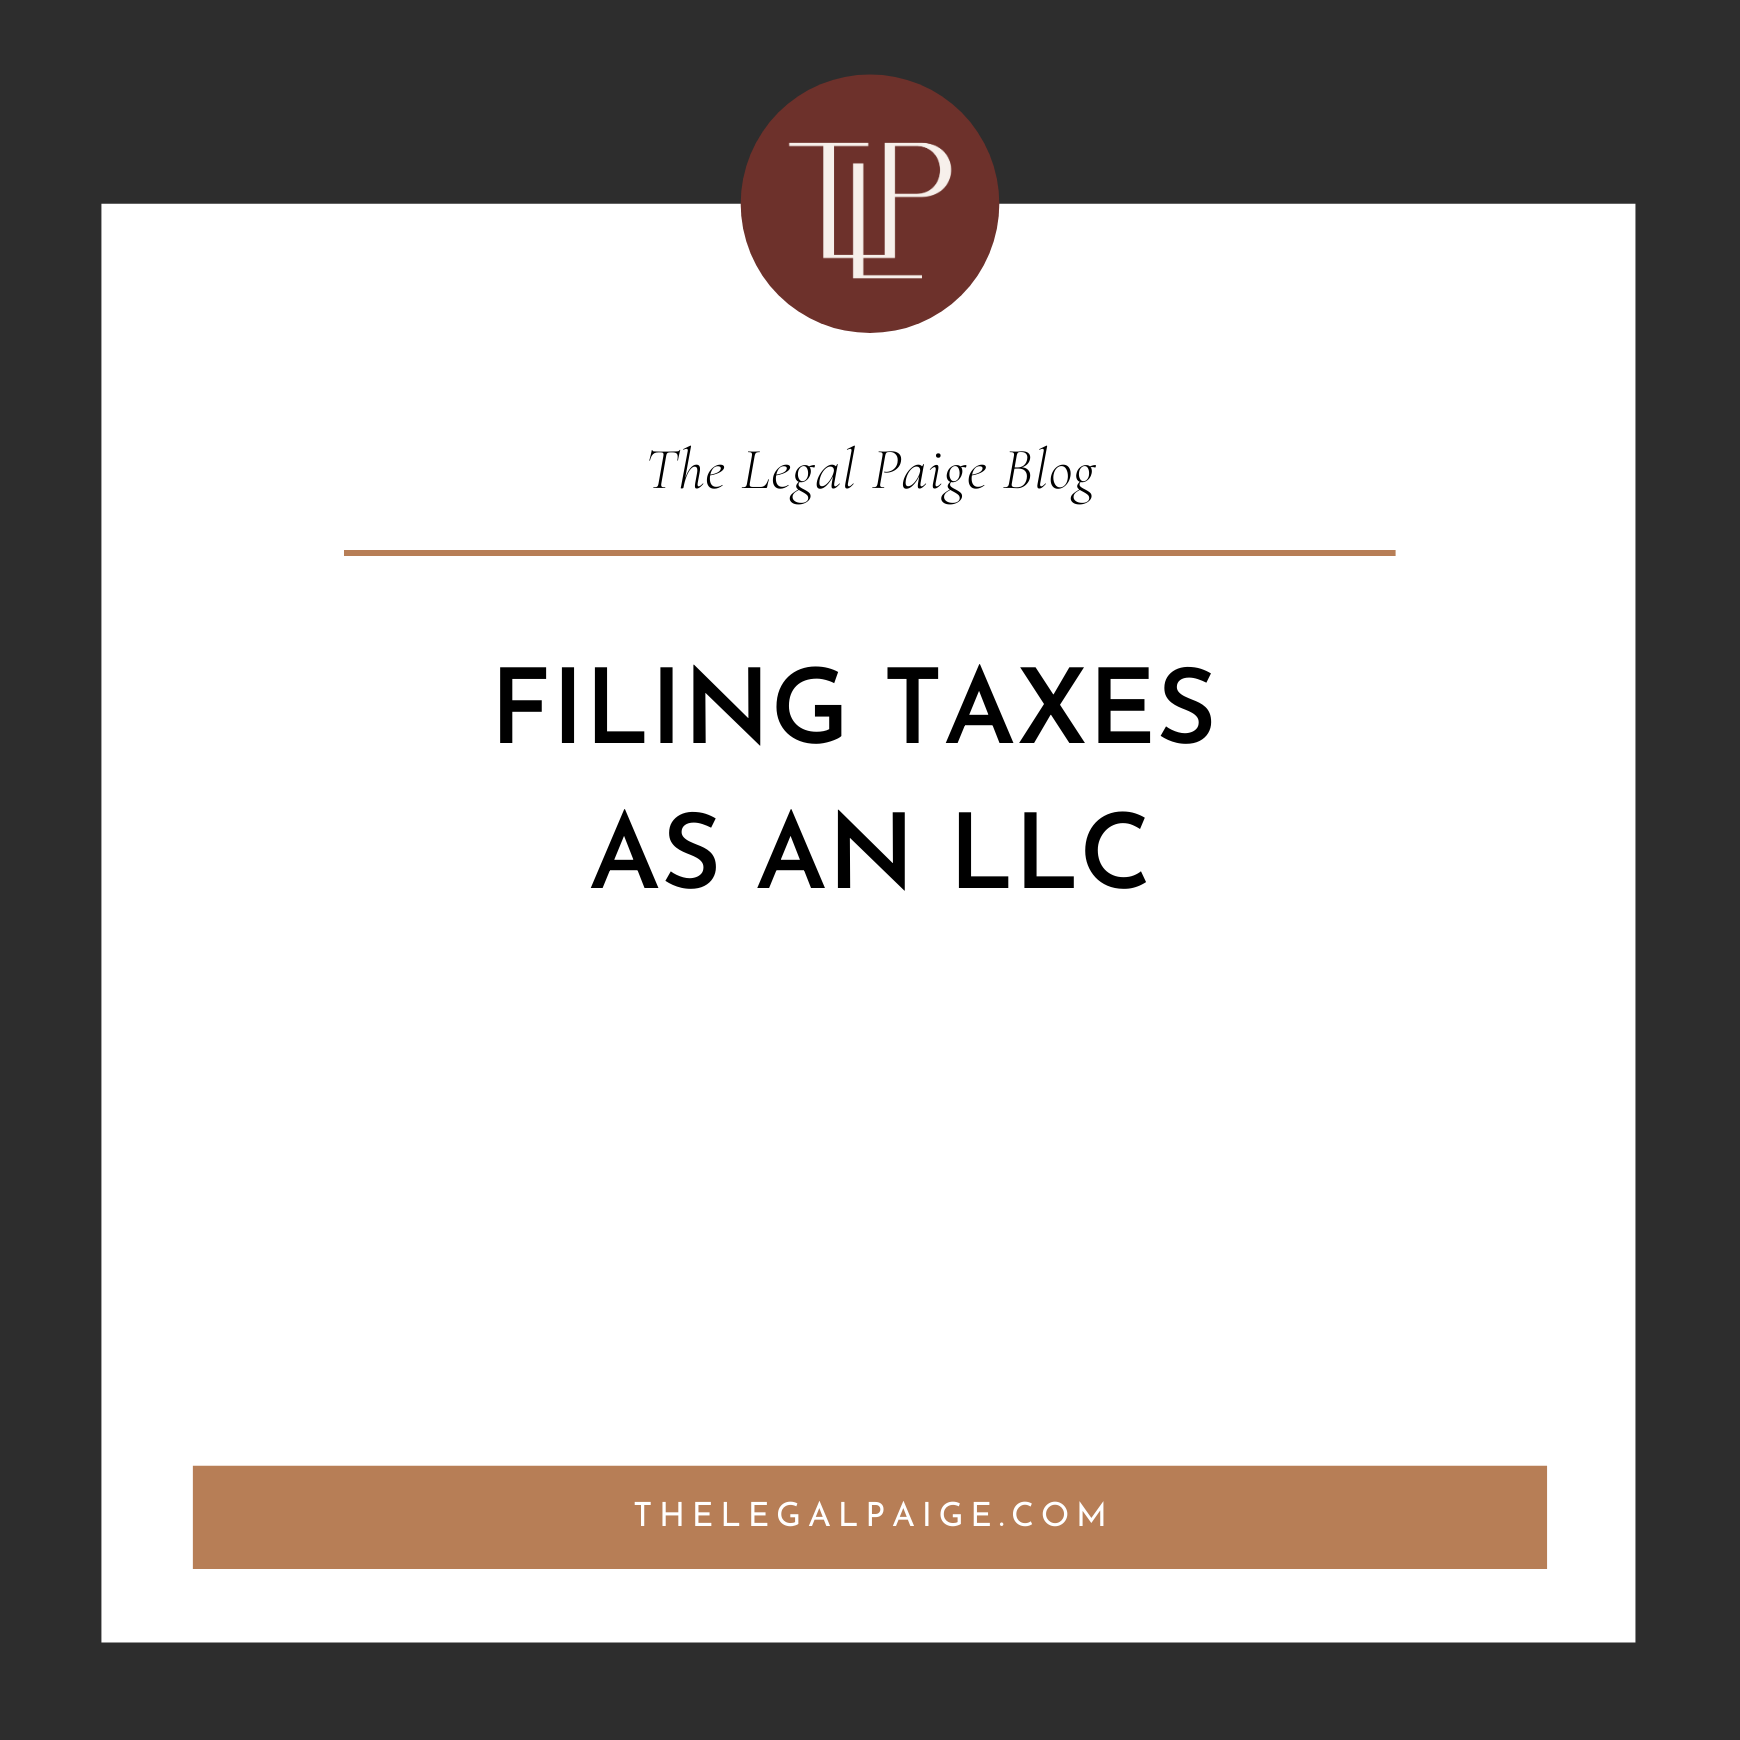 Filing Taxes as an LLC